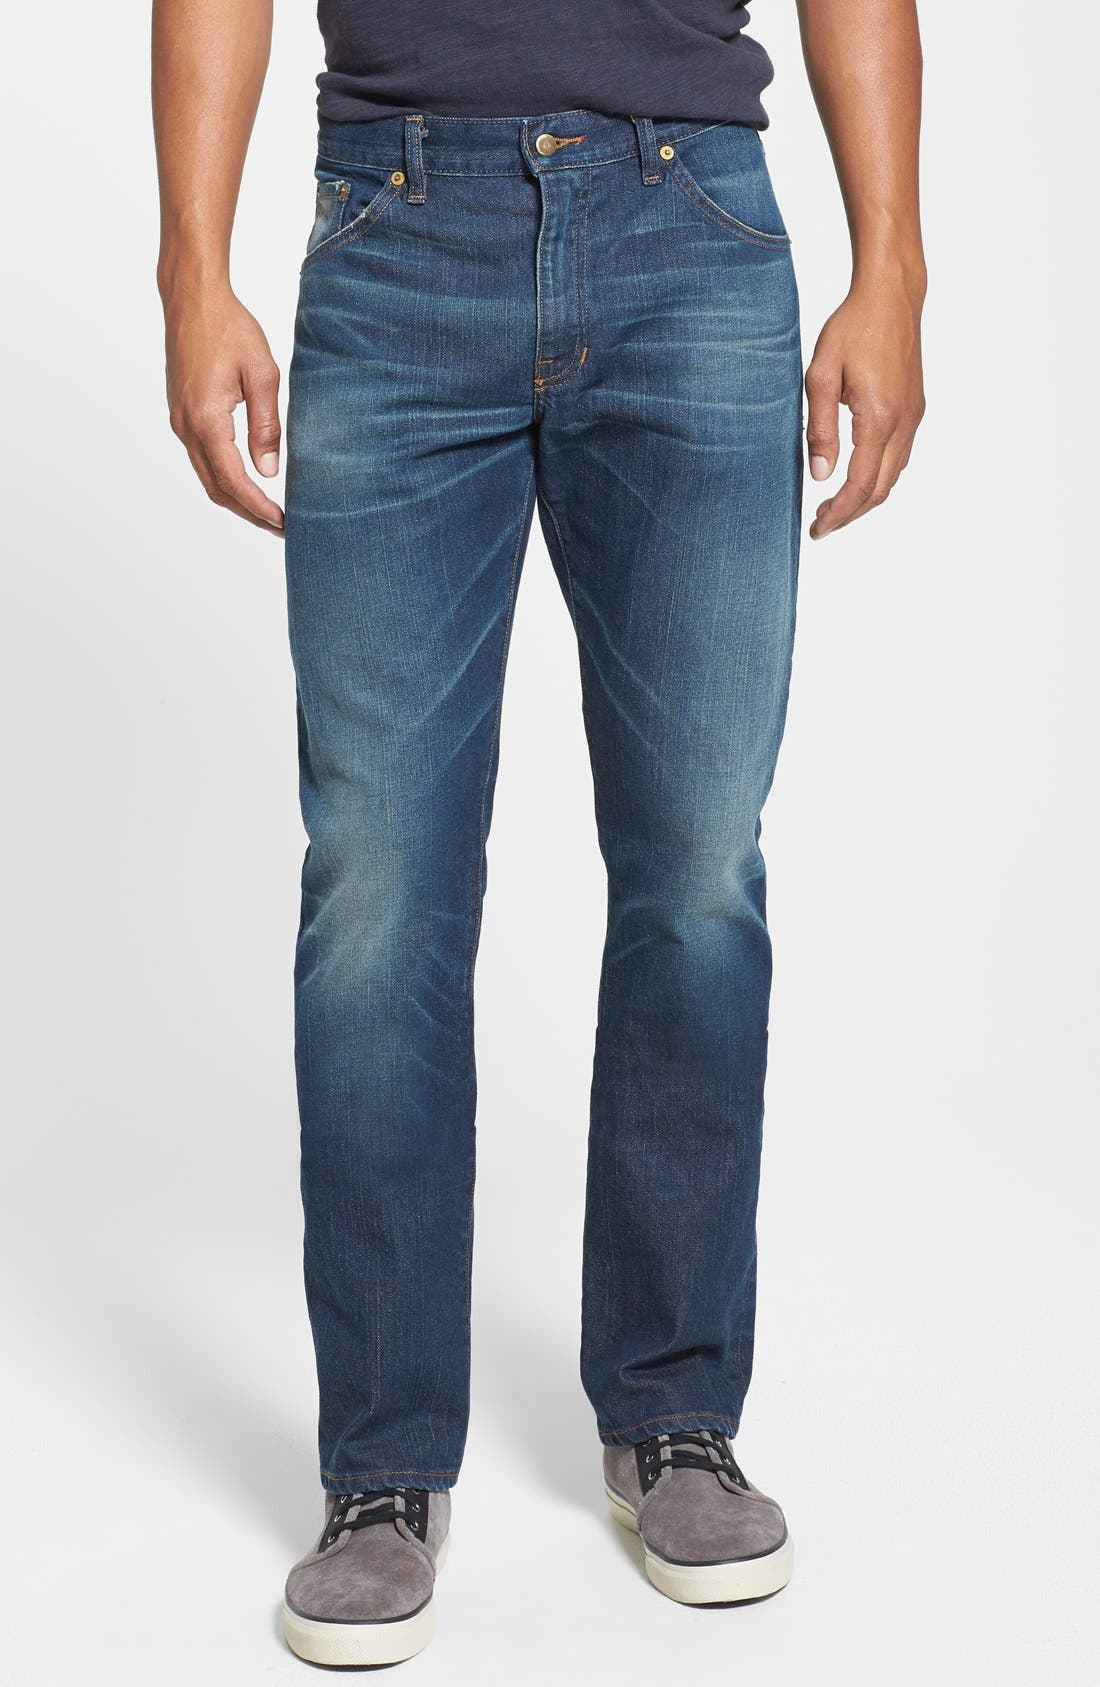 'Jones' Slim Straight Fit Jeans,                             Main thumbnail 1, color,                             CAMP